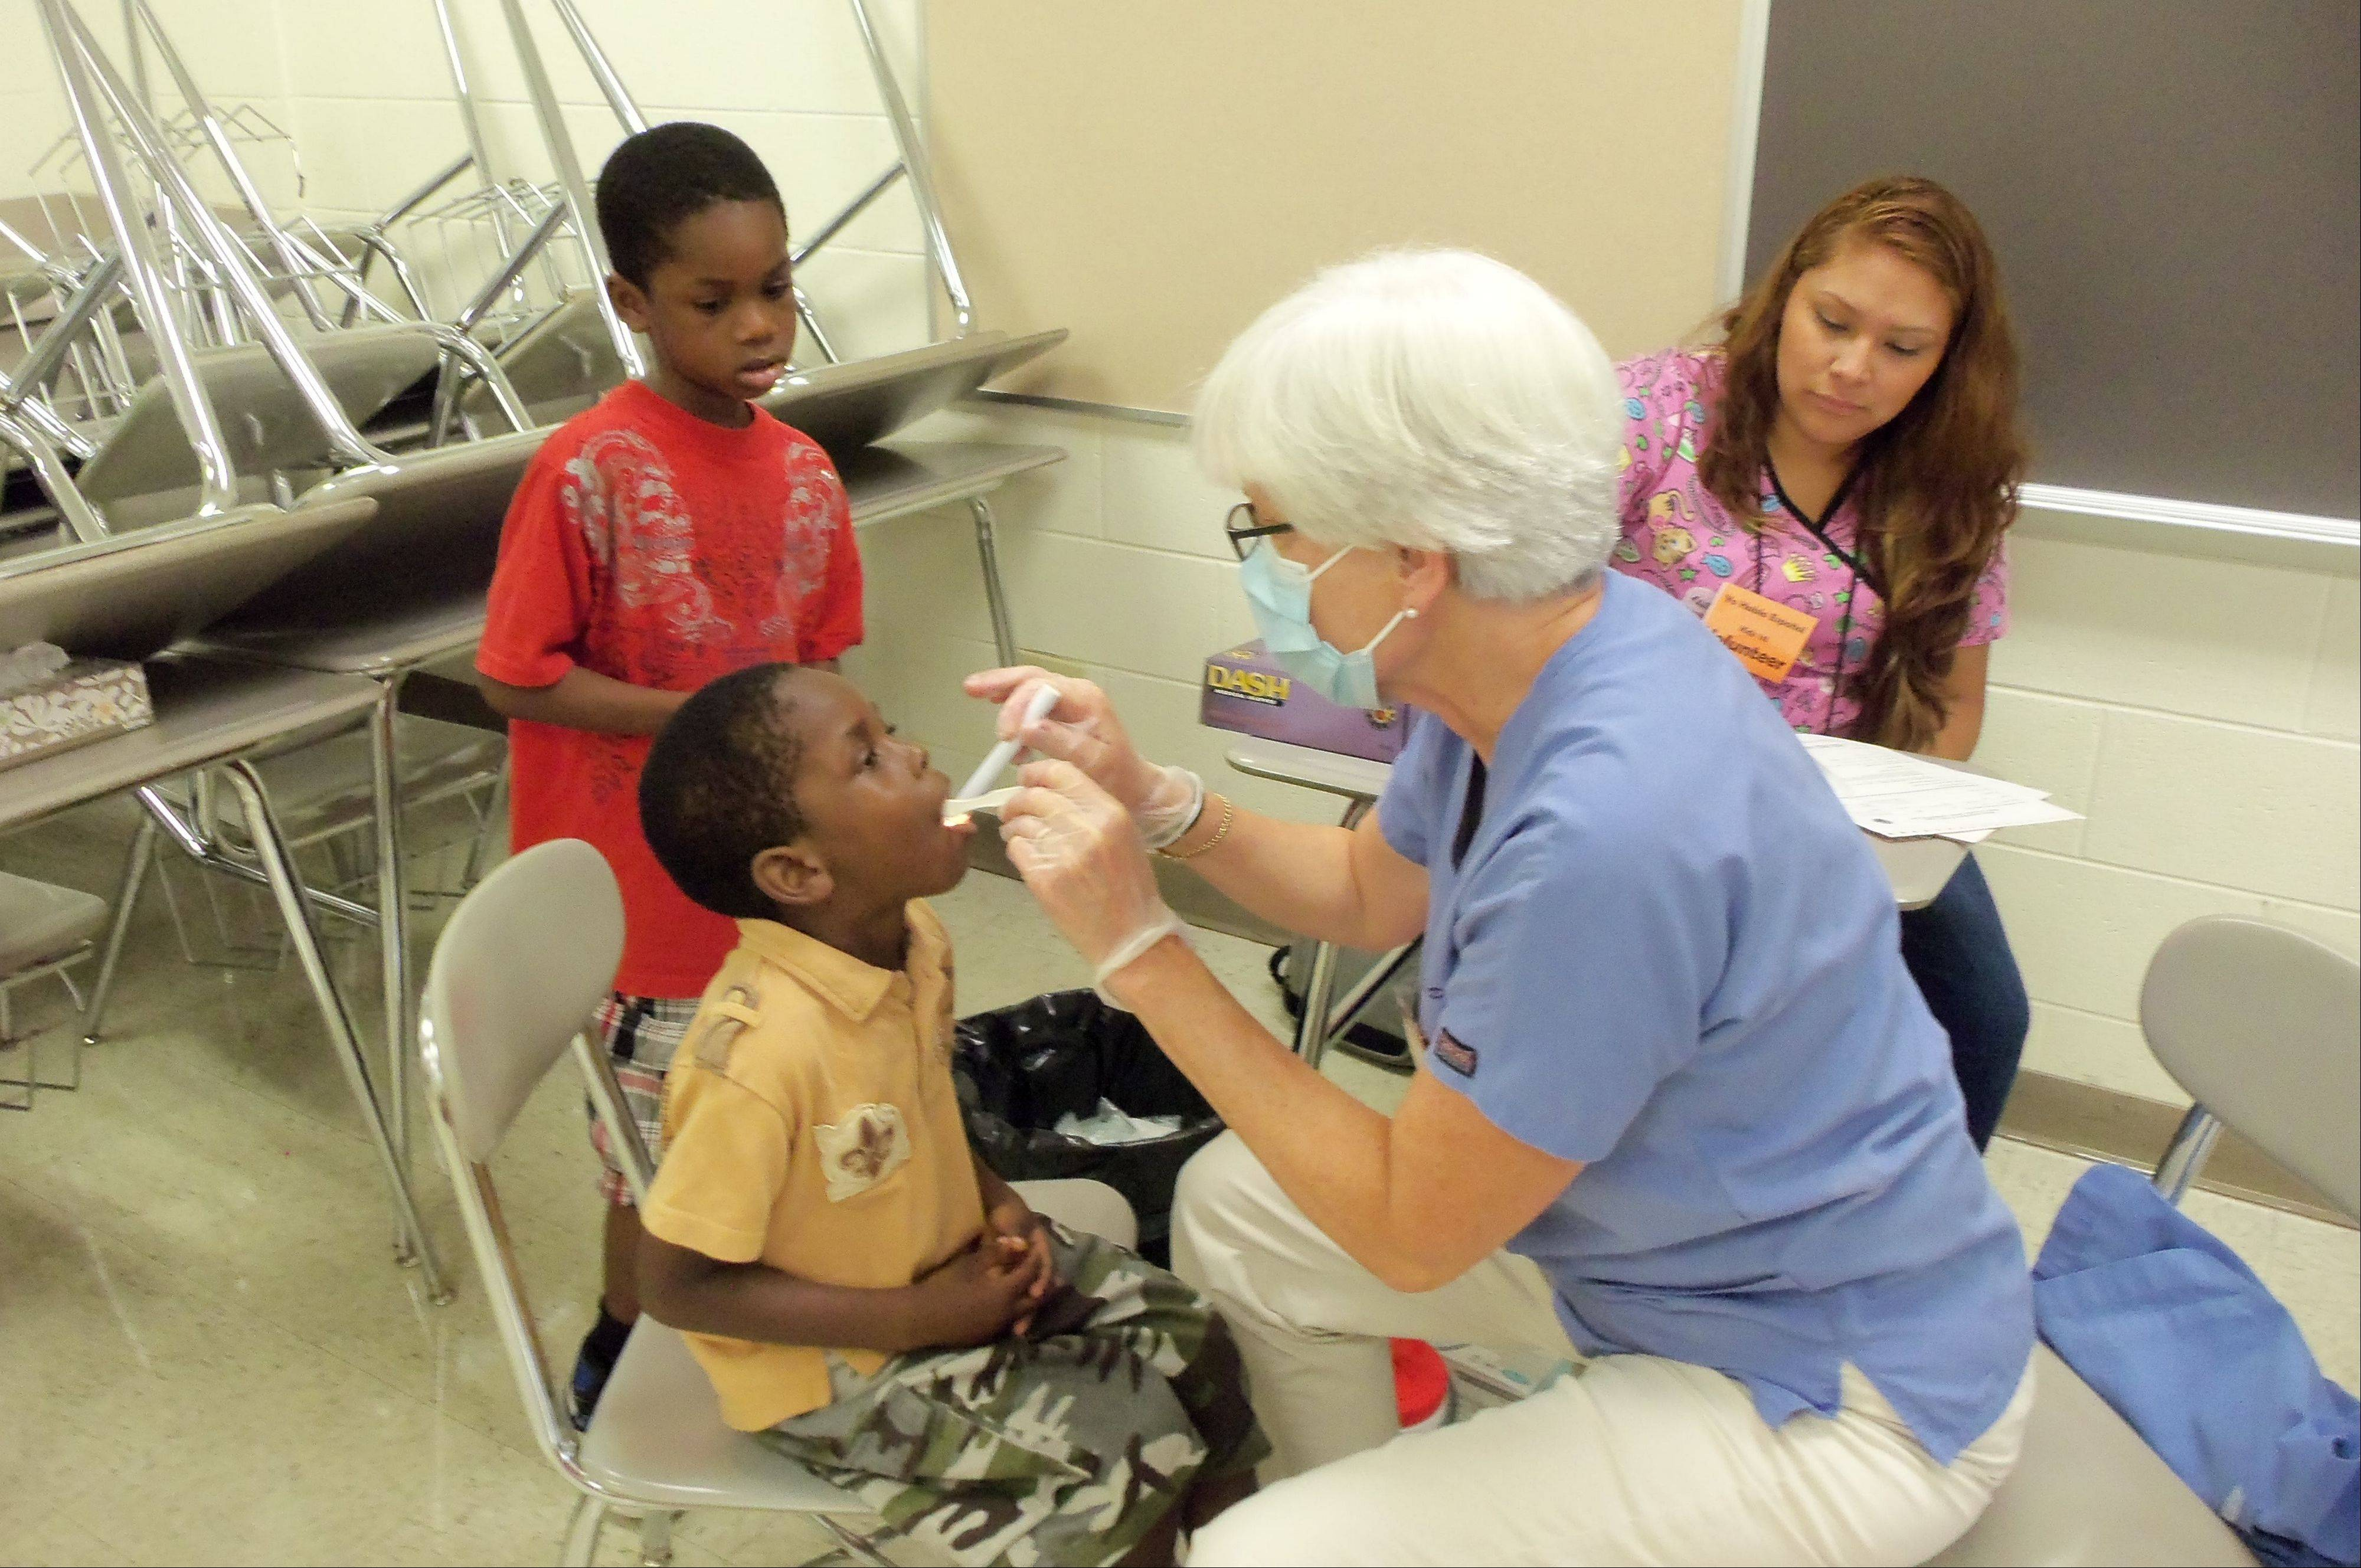 Quinton Payne, 7, of Waukegan watches as his brother, Quintarion Payne, 4, of Waukegan has his teeth examined by Dr. Christina O'Connor, a volunteer dentist at the Kids 1st Health Fair.